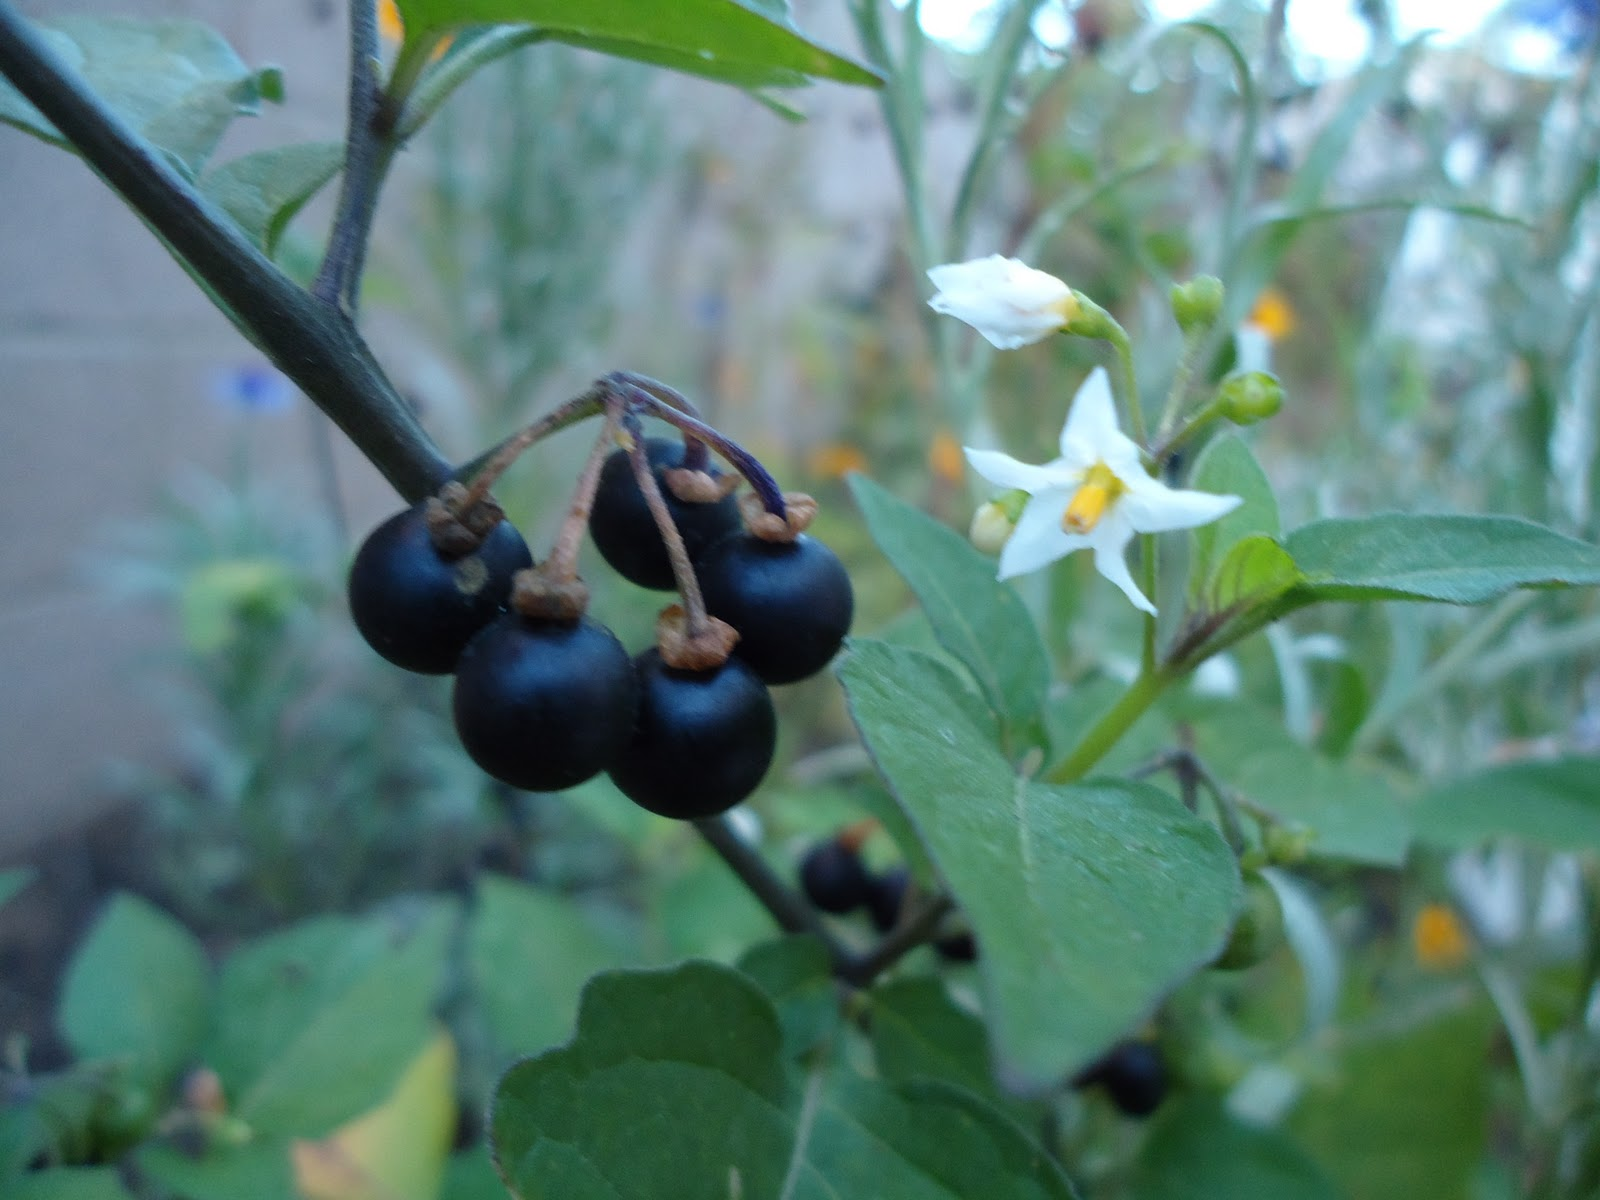 Sunberries Or Some Other Poisonous Nightshade Berries